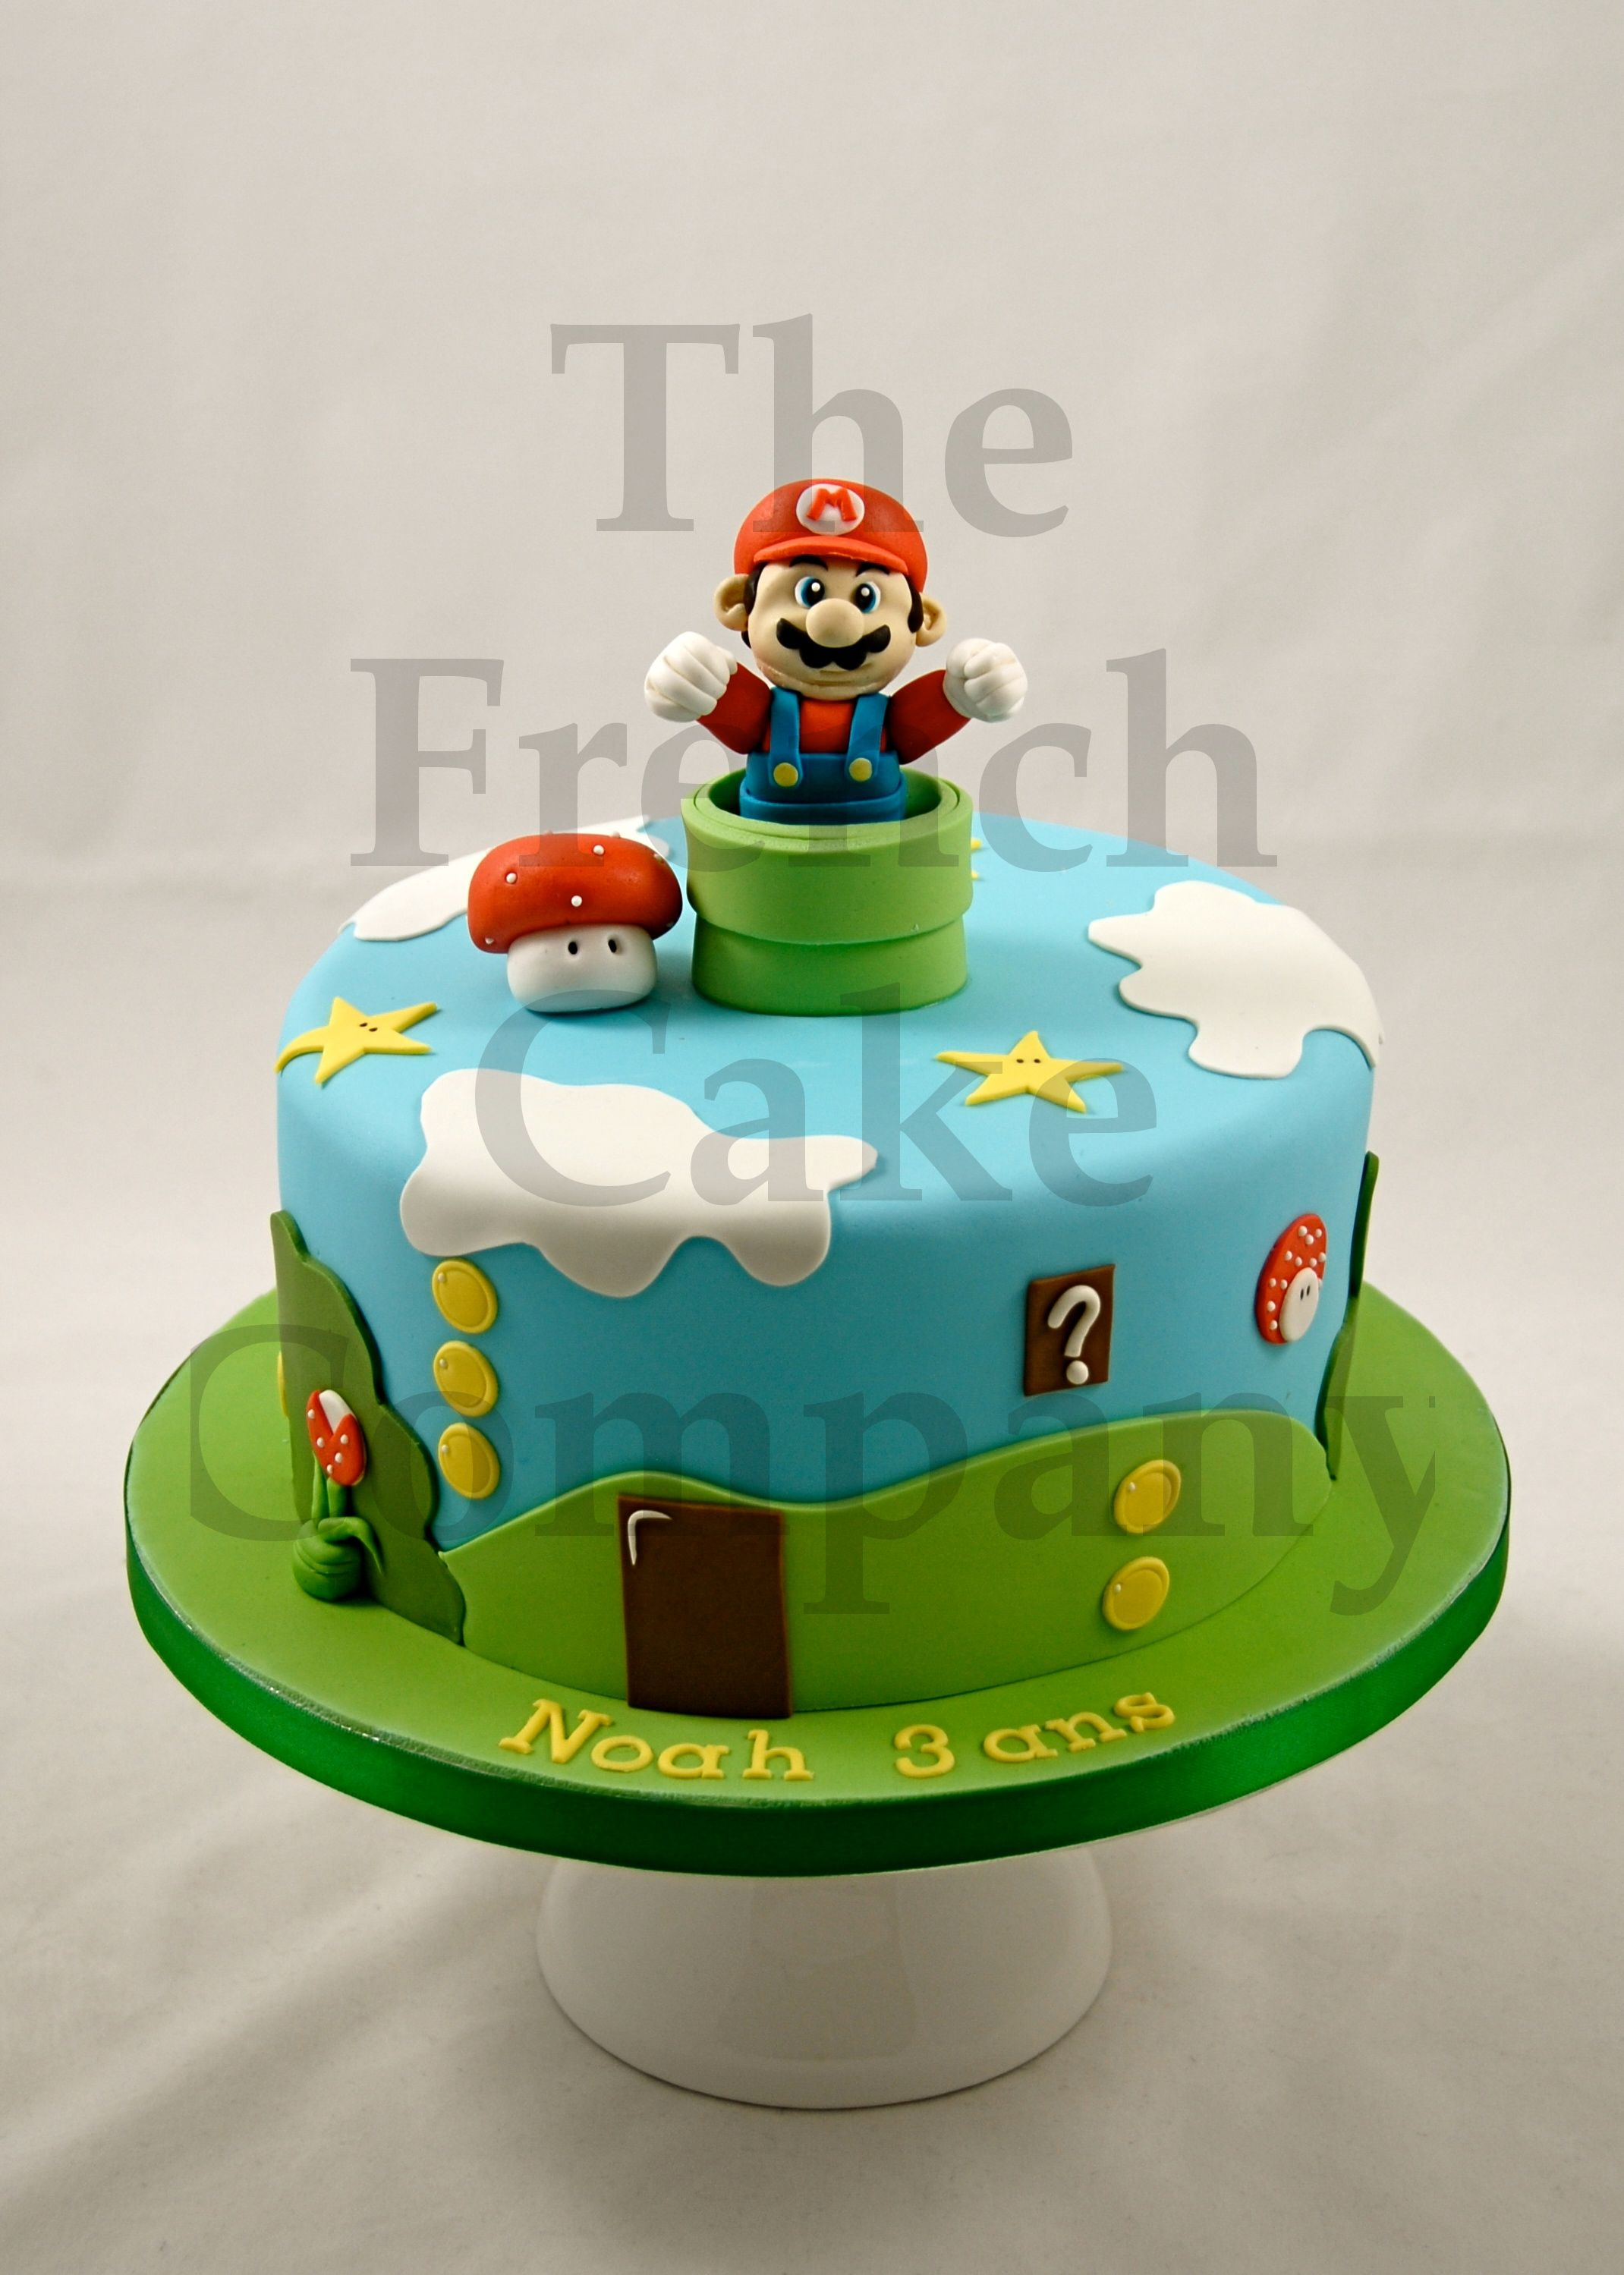 cake for boys mario gateau d 39 anniversaire pour enfants garcon mario verjaardagstaart cakes. Black Bedroom Furniture Sets. Home Design Ideas